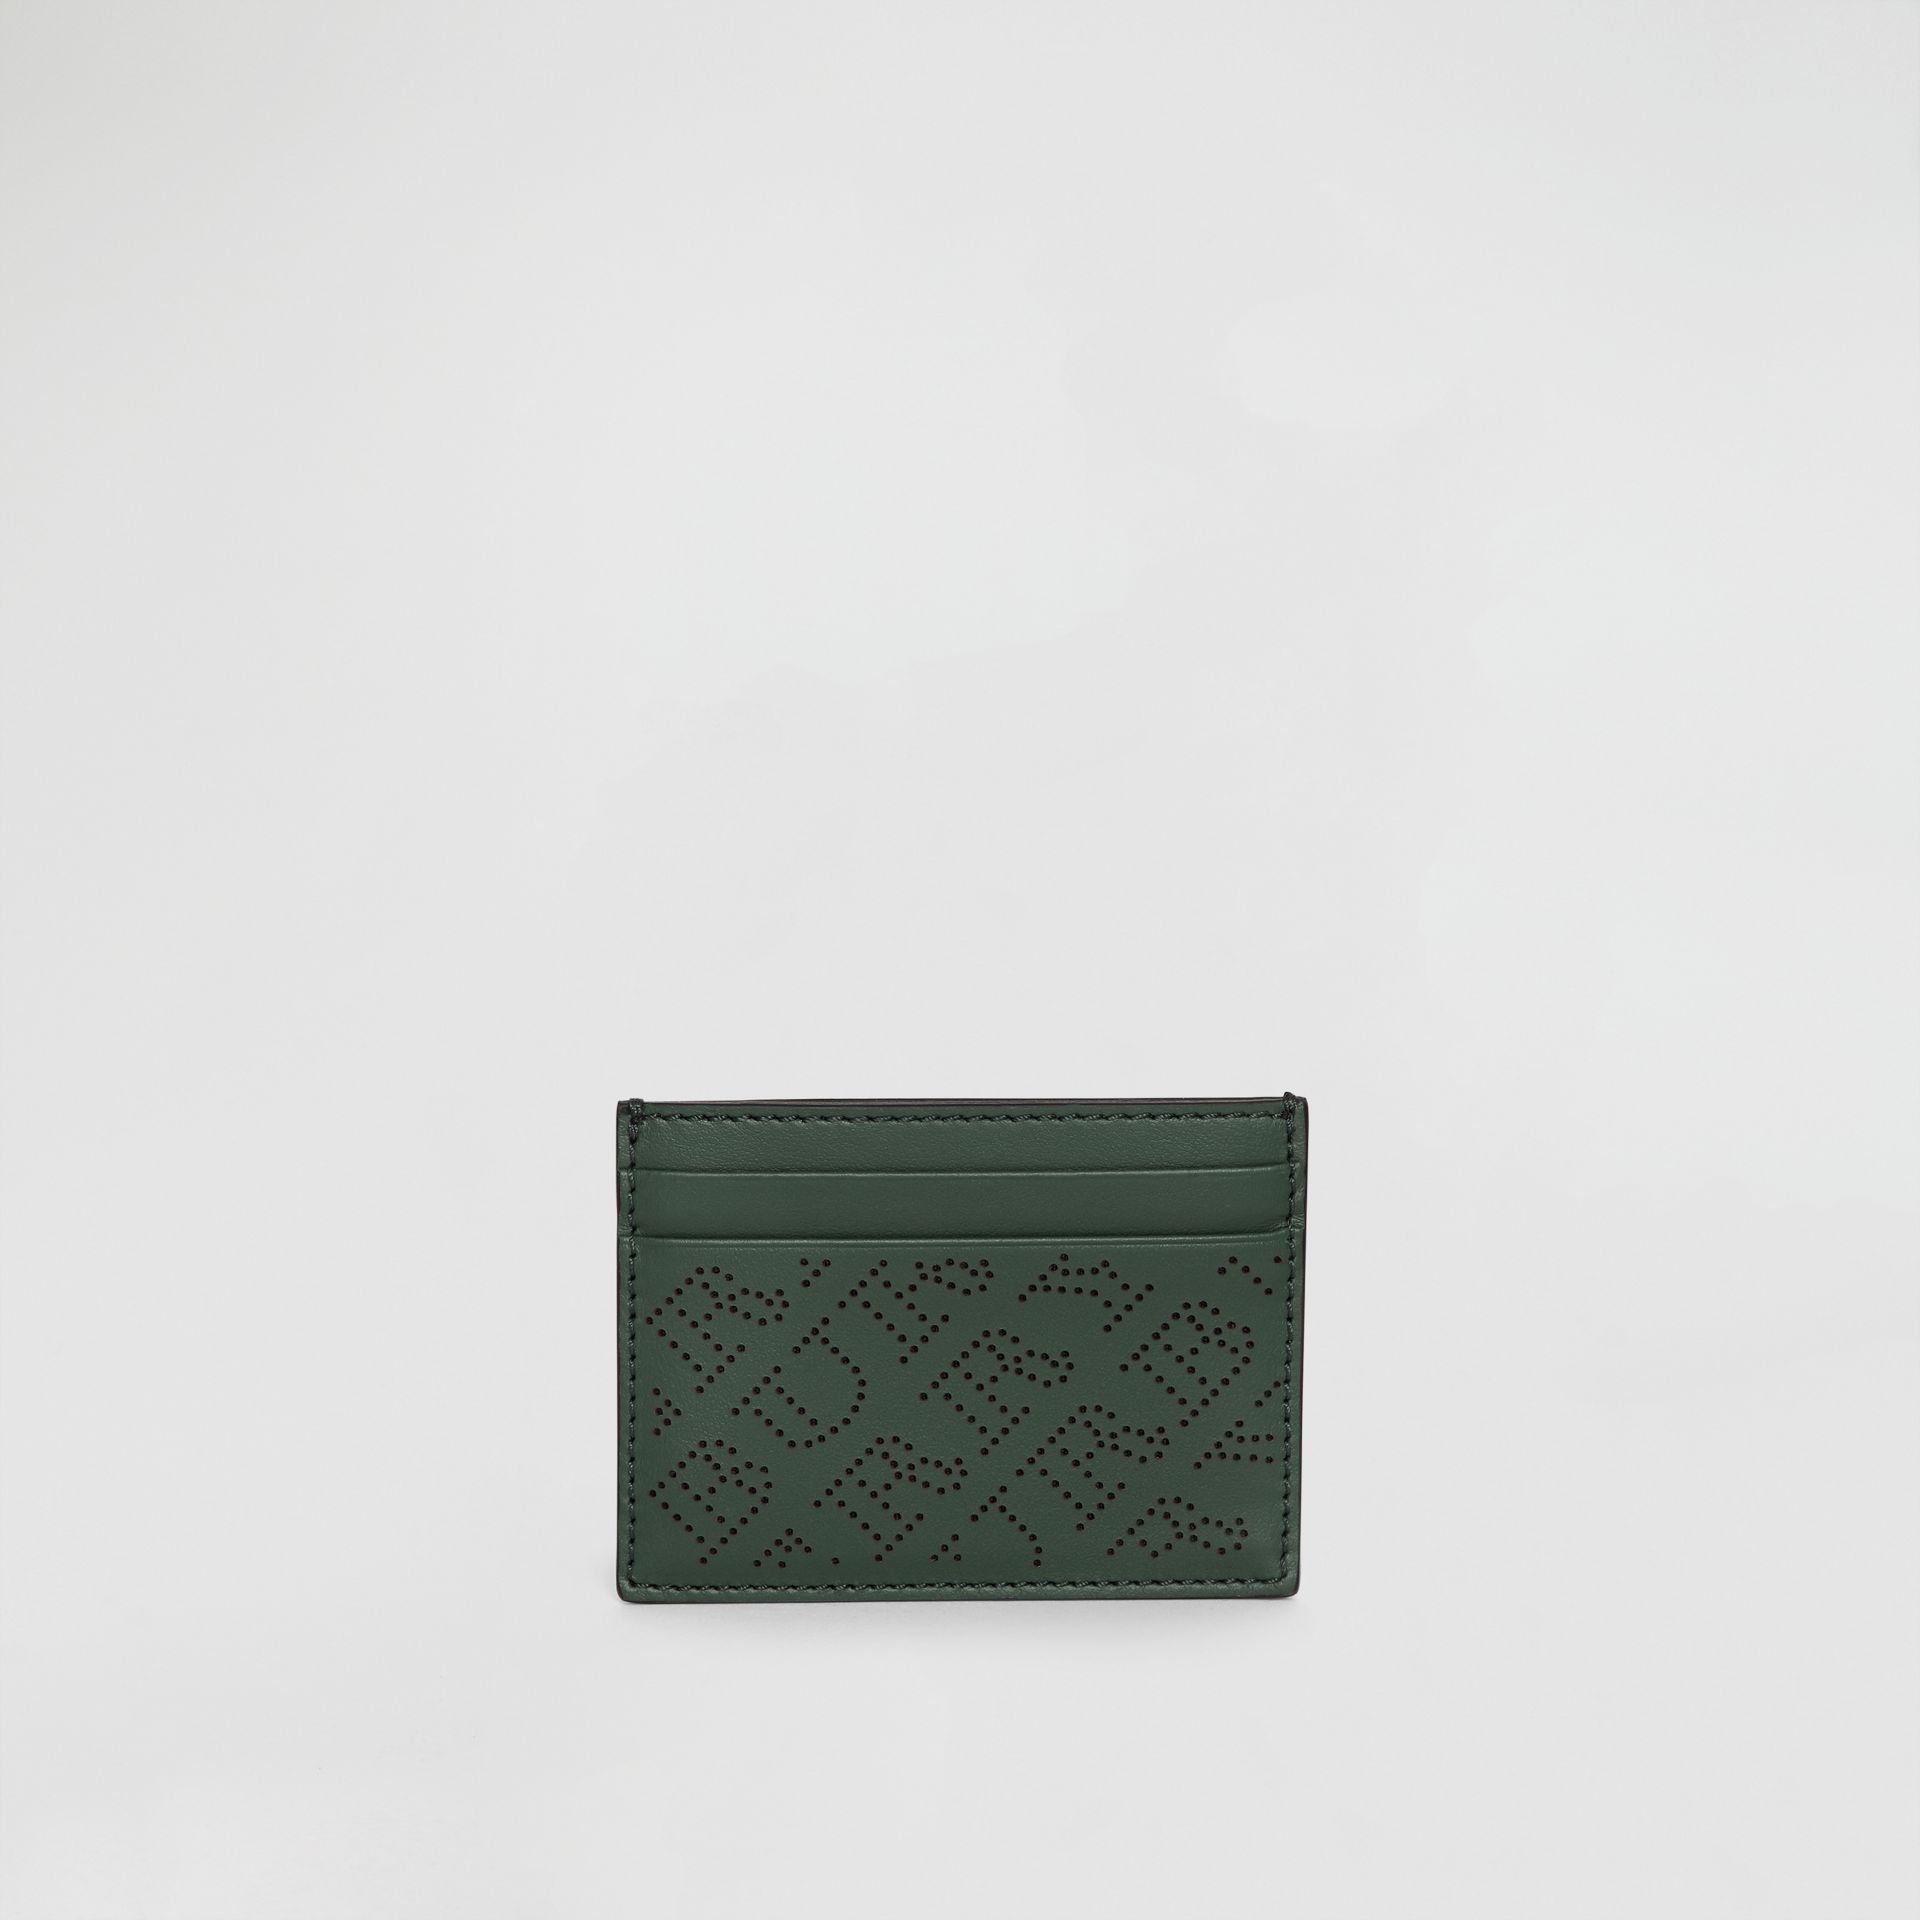 Perforated Logo Leather Card Case in Vintage Green - Women | Burberry - gallery image 2